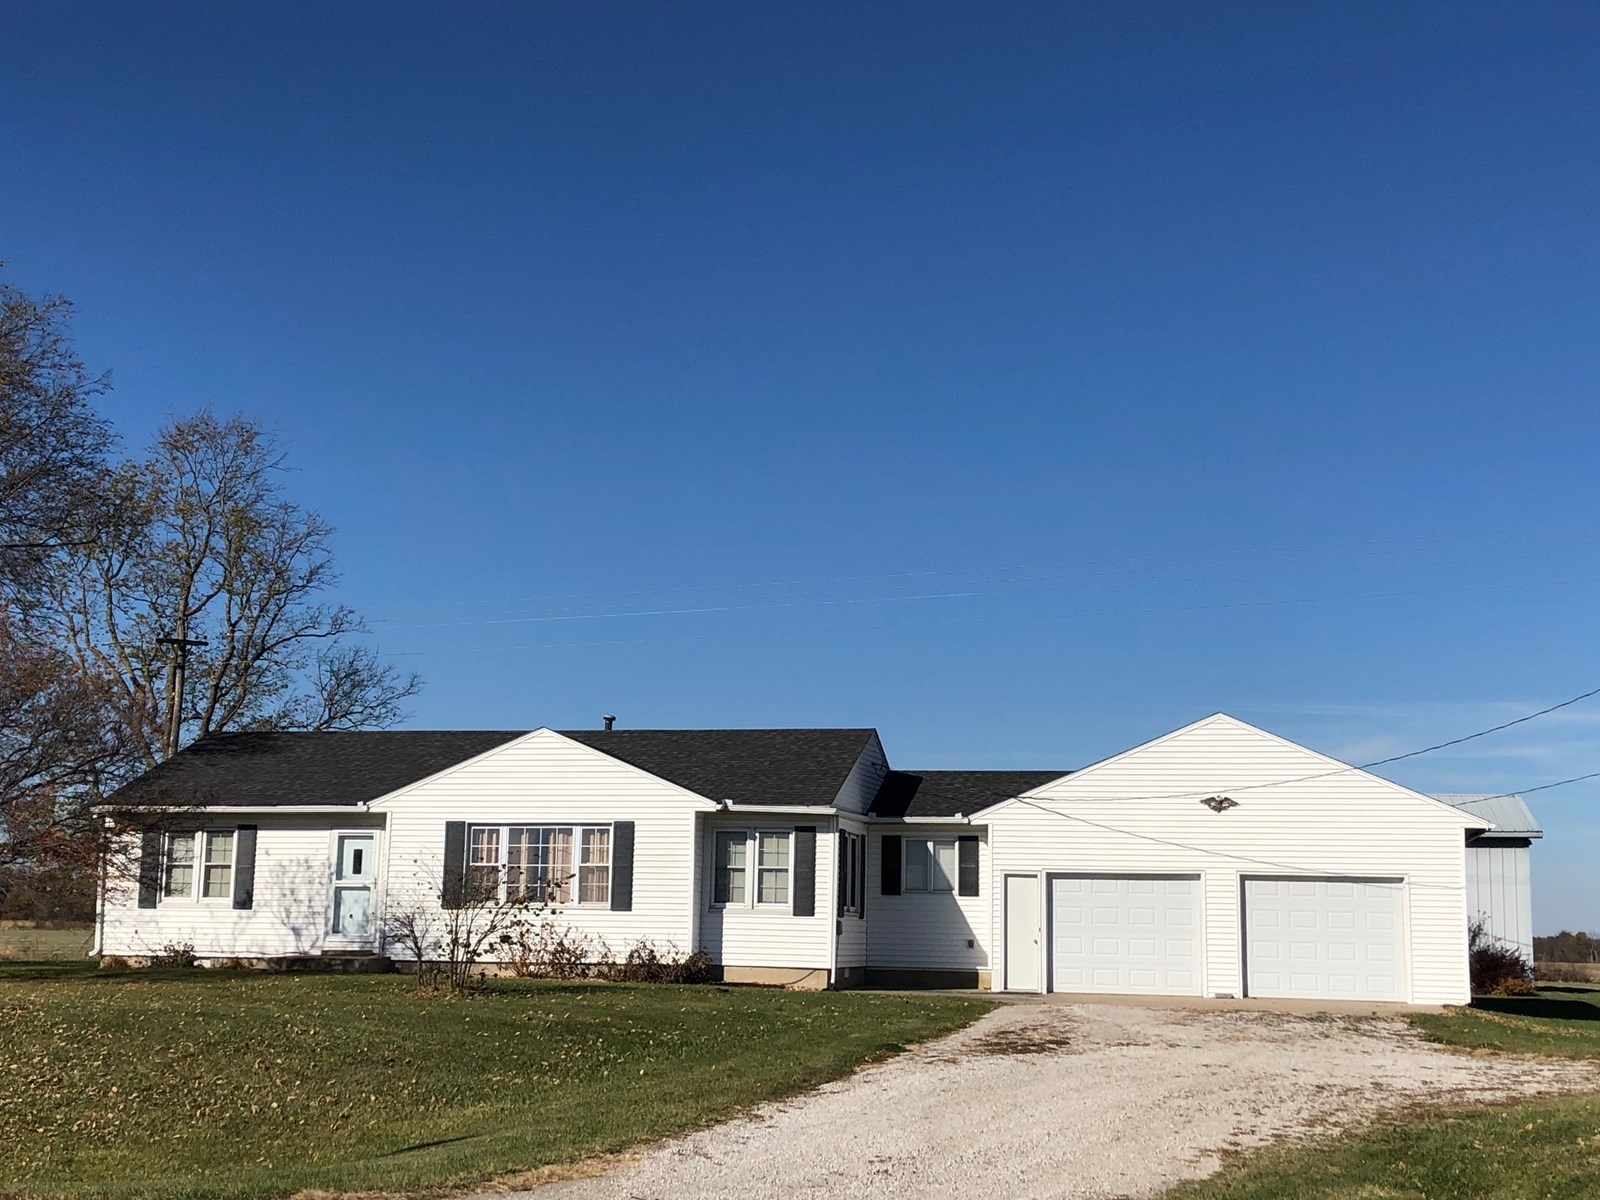 For Sale Ranch Home With Morton Building On 1/2 Acre